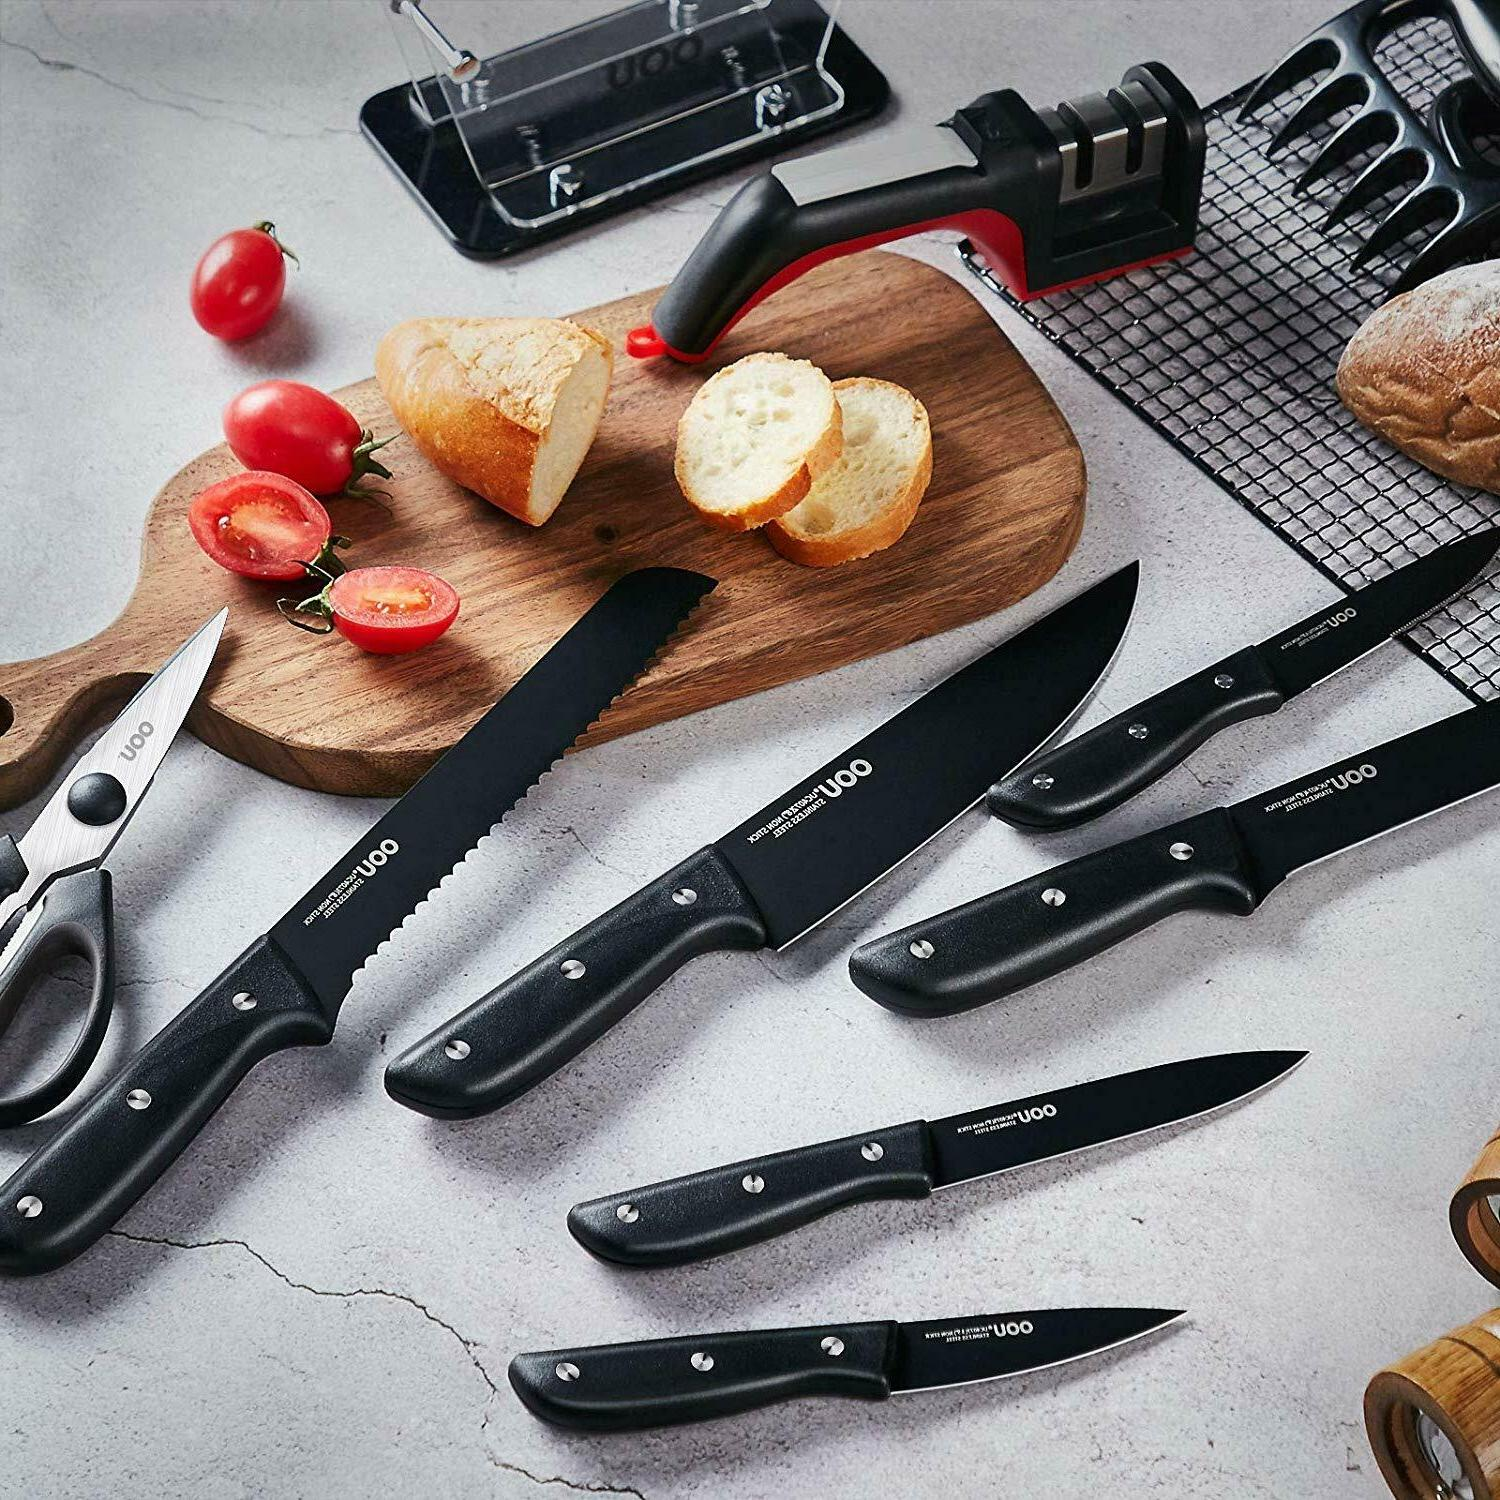 Knife Set Kitchen Knives Set with Clear Block, Stainless Chef Knife S